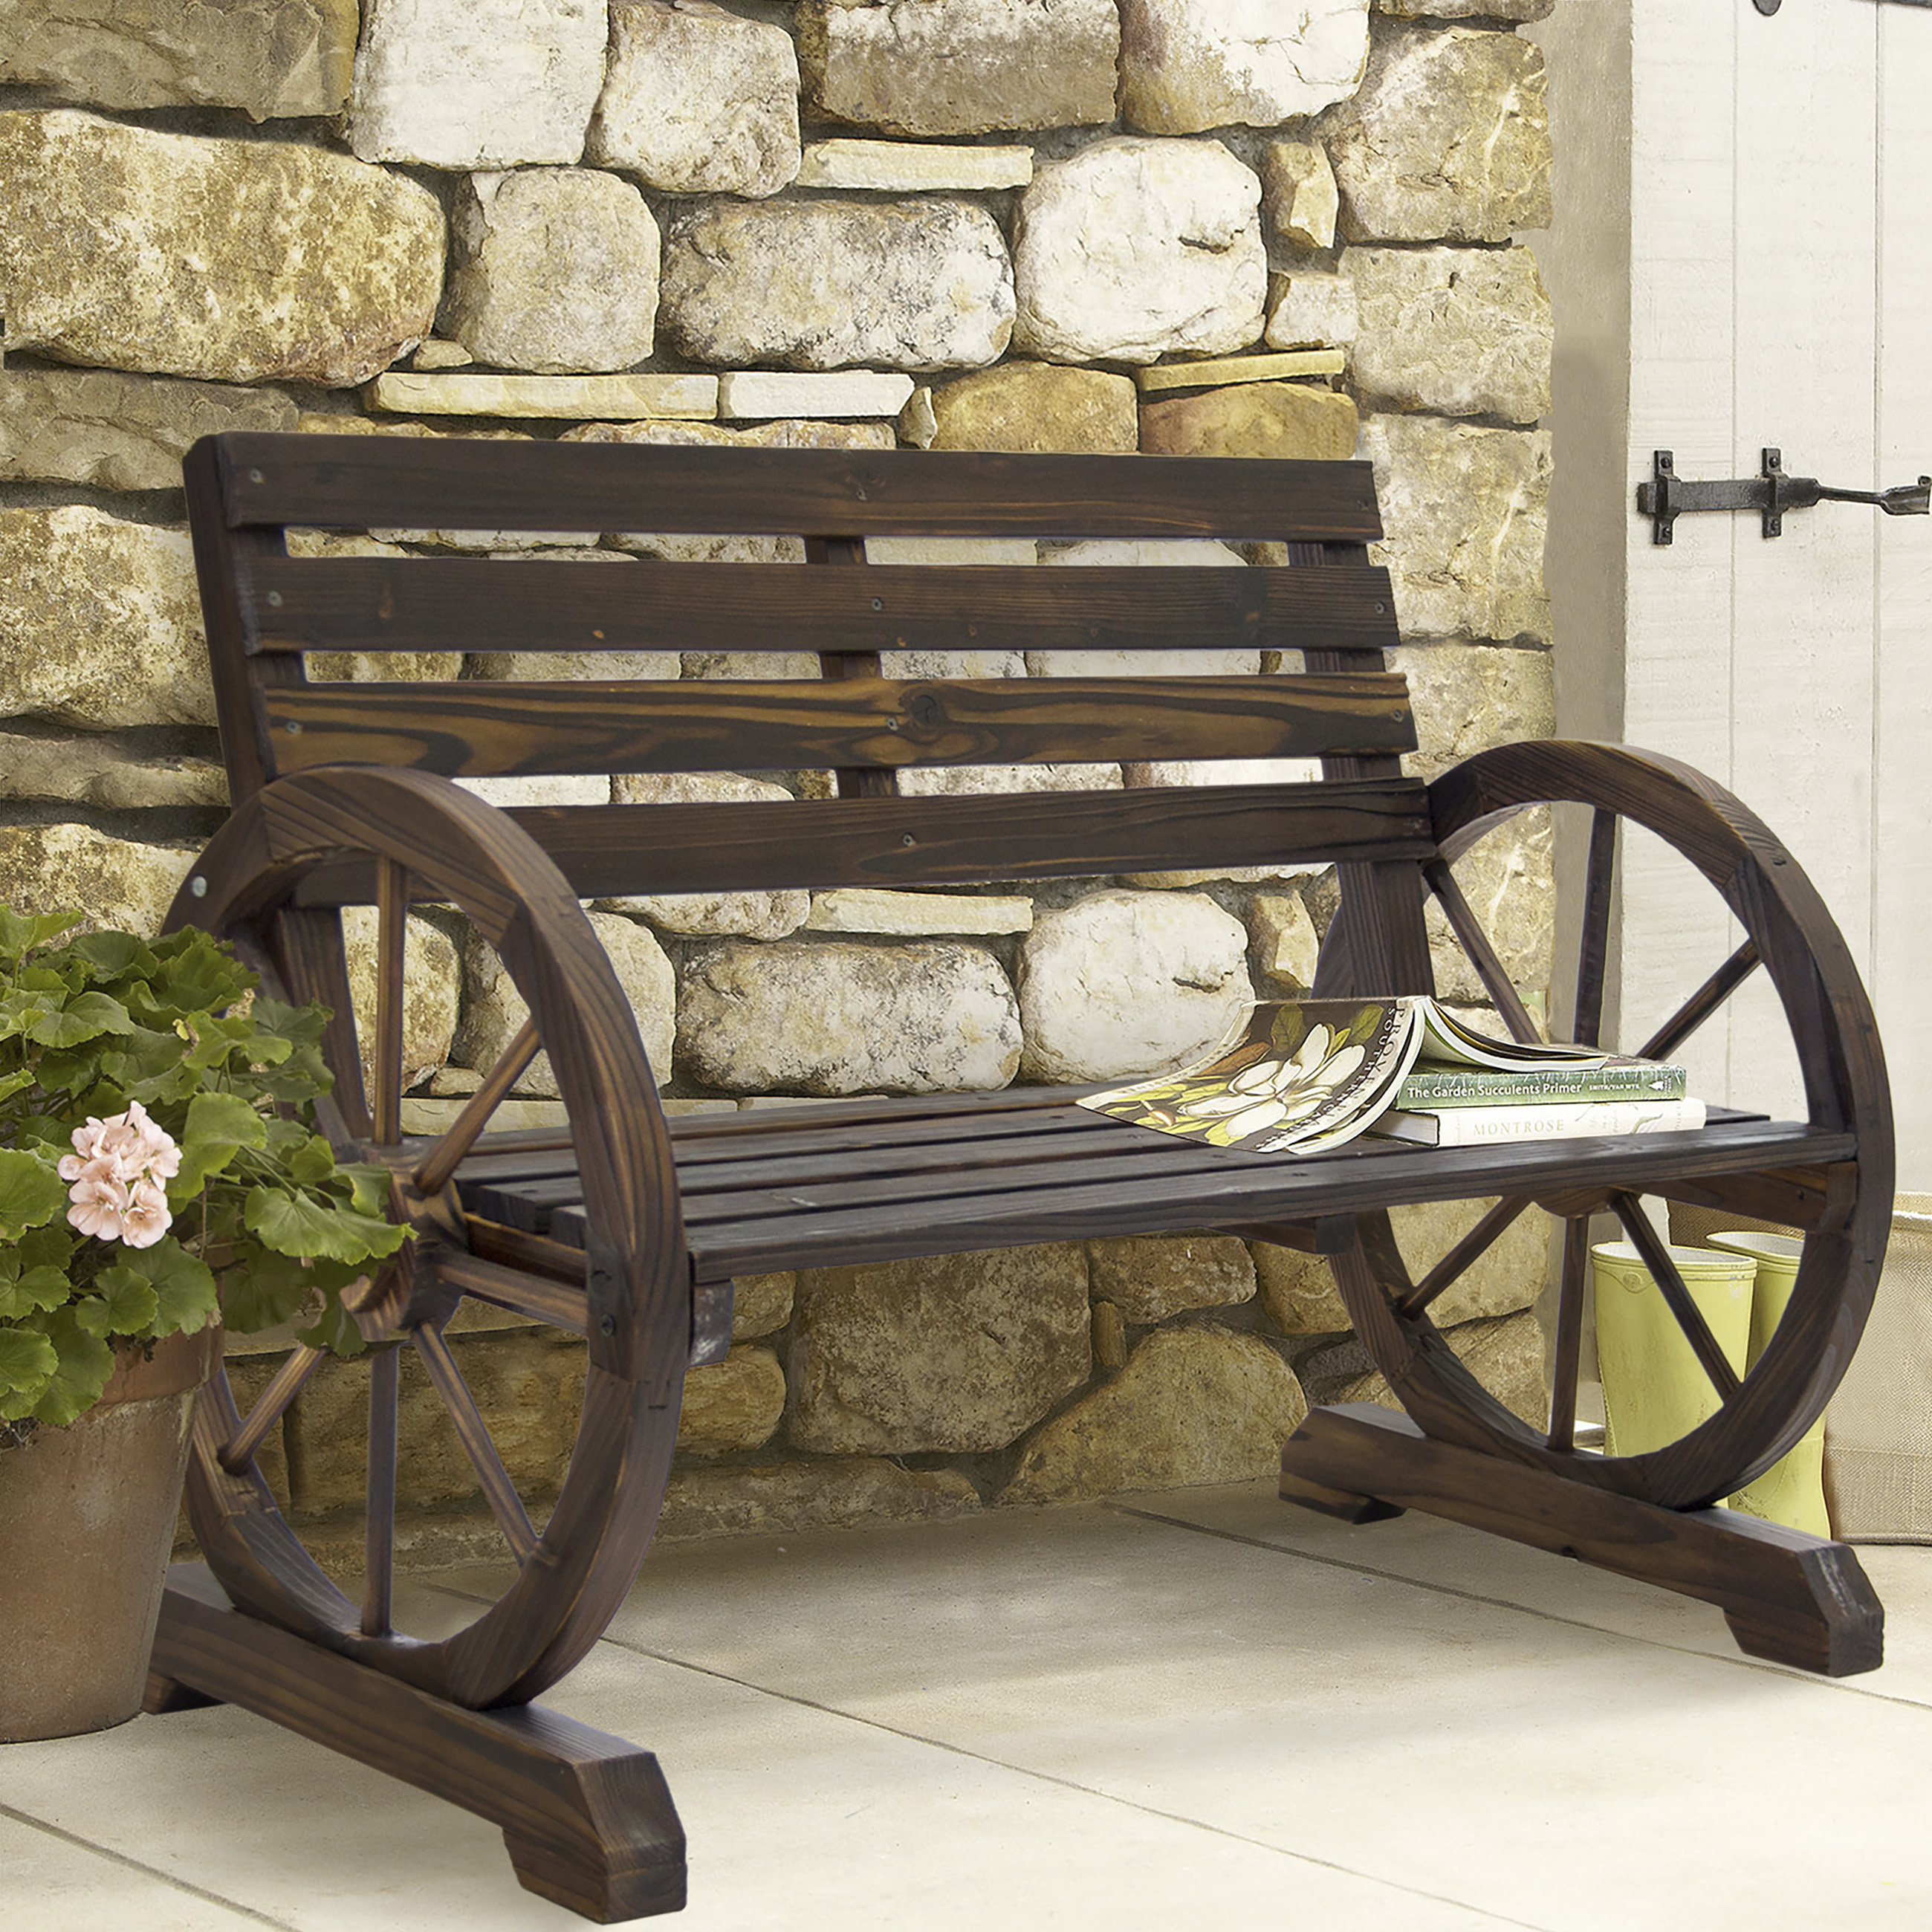 Skytel BCP Patio Garden Wooden Wagon Wheel Bench Rustic W...